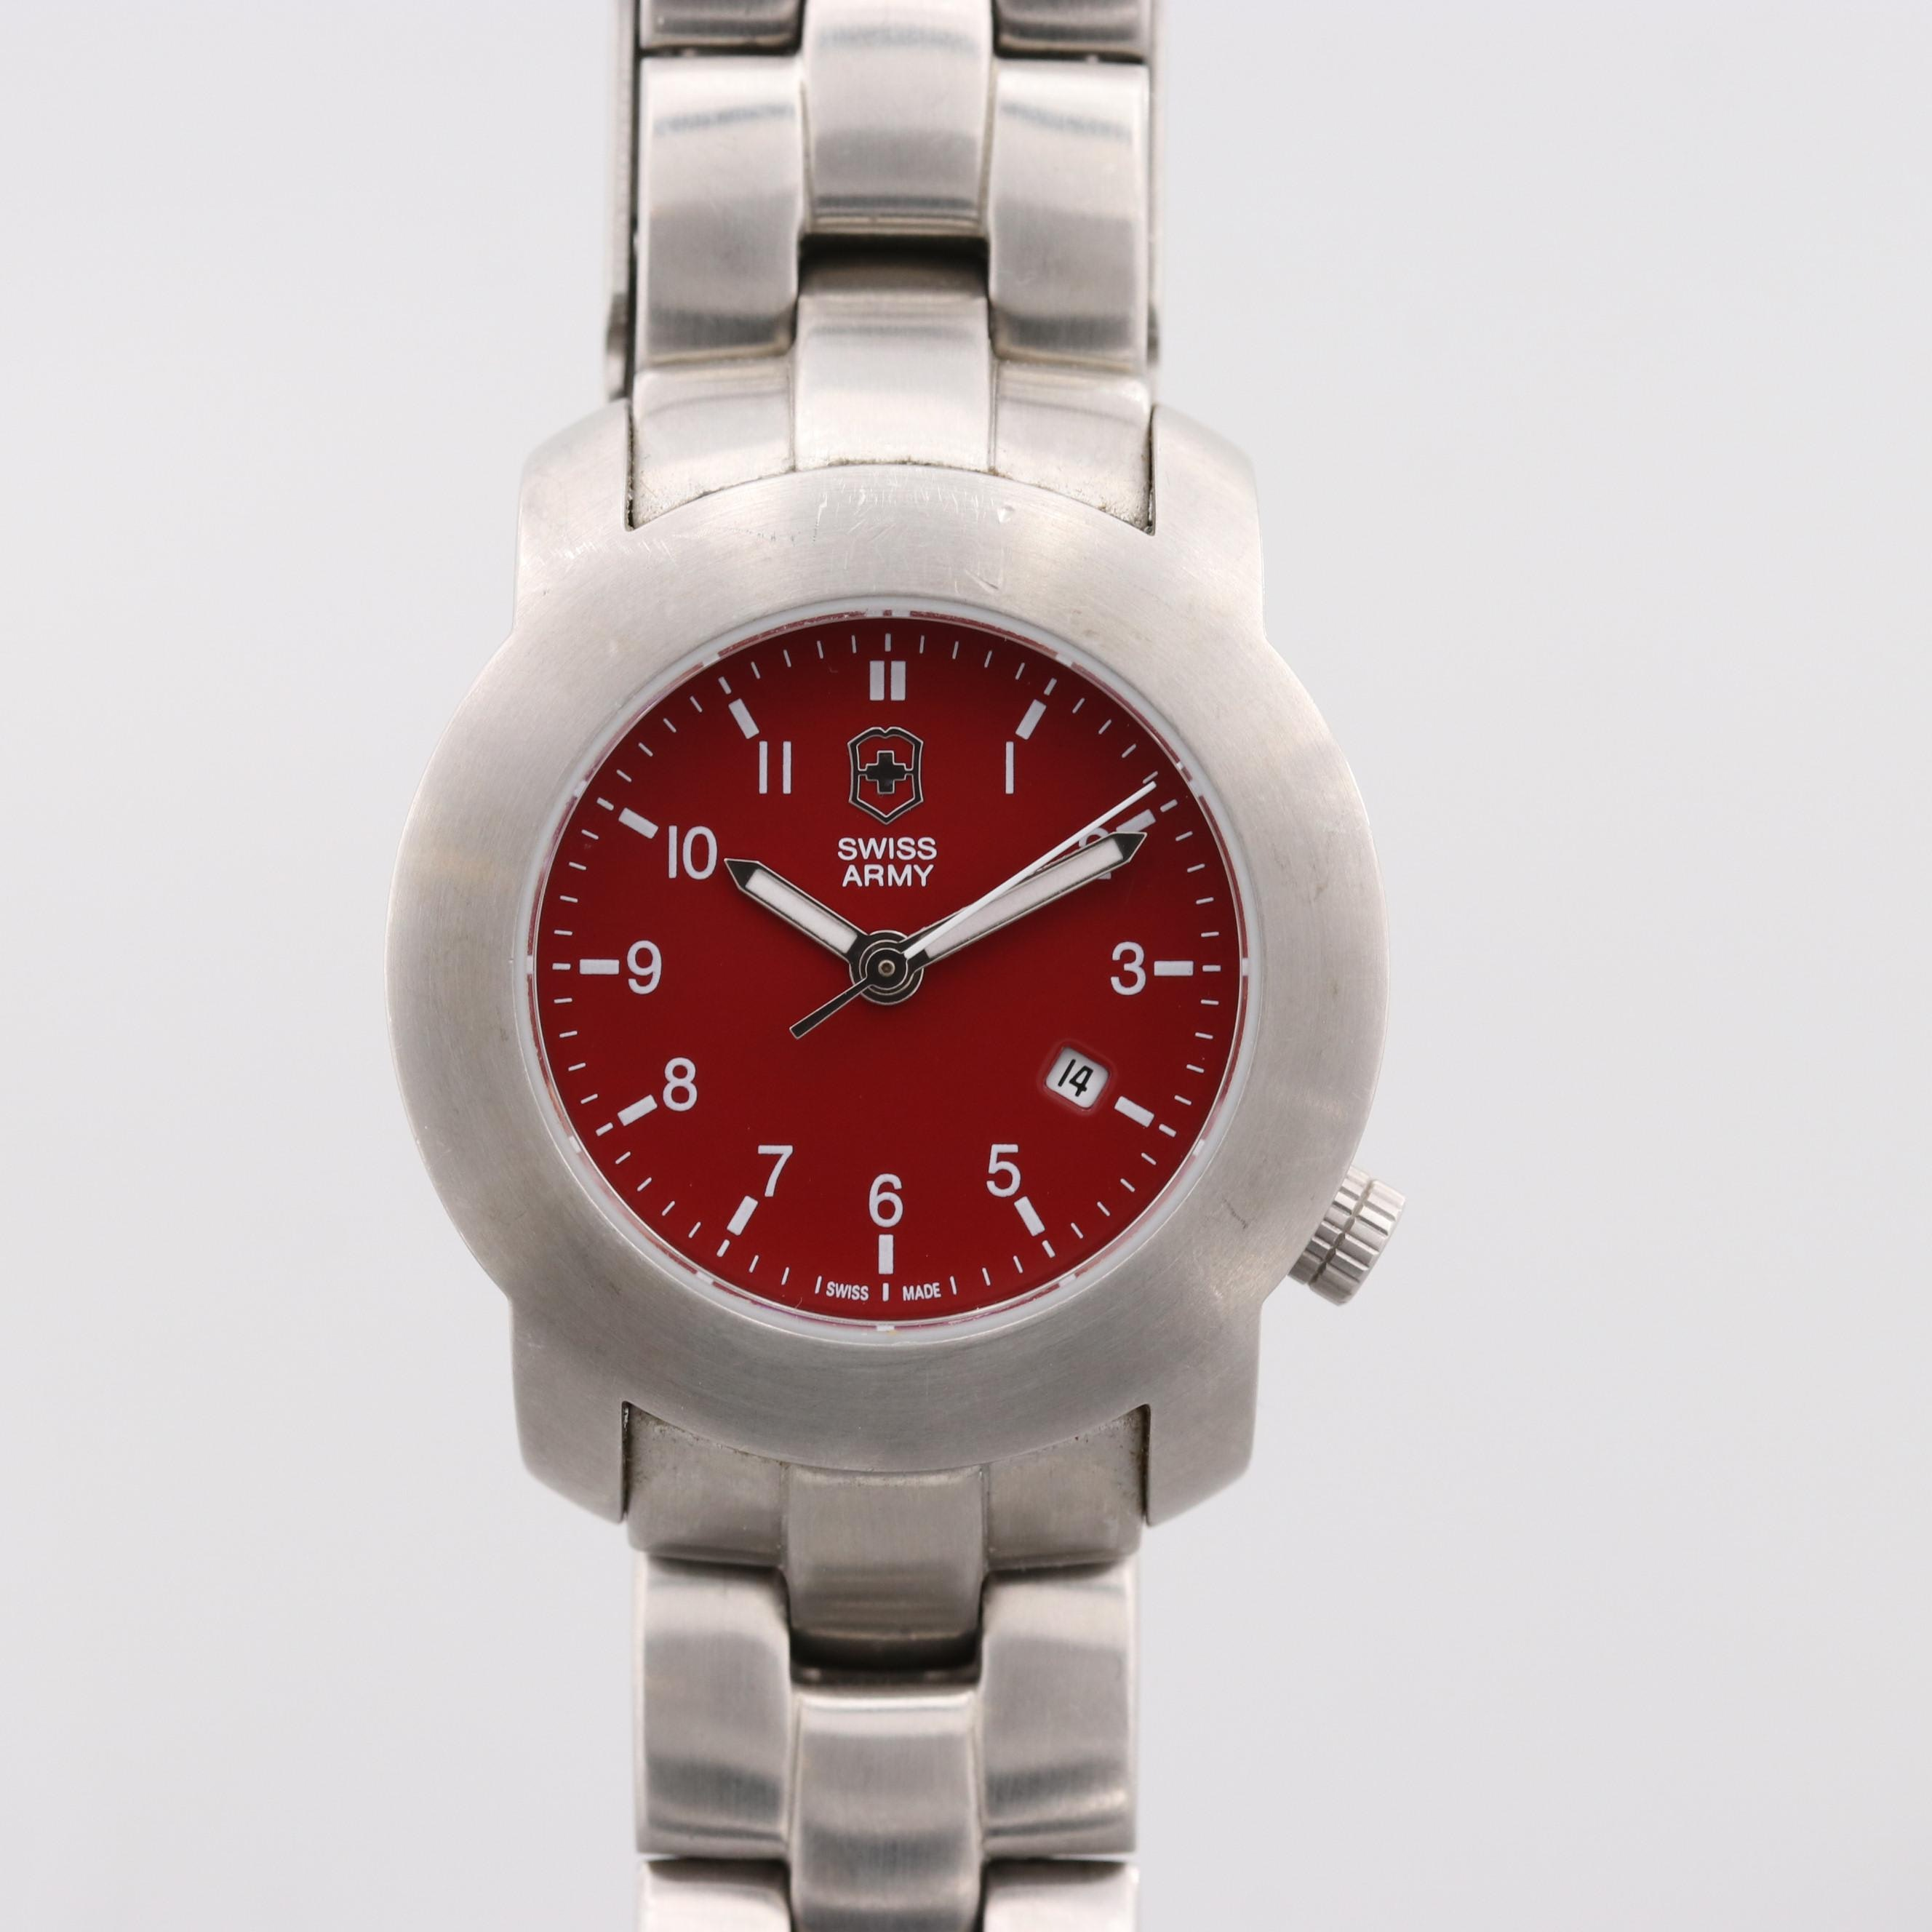 Swiss Army Stainless Steel Wristwatch With Date Window